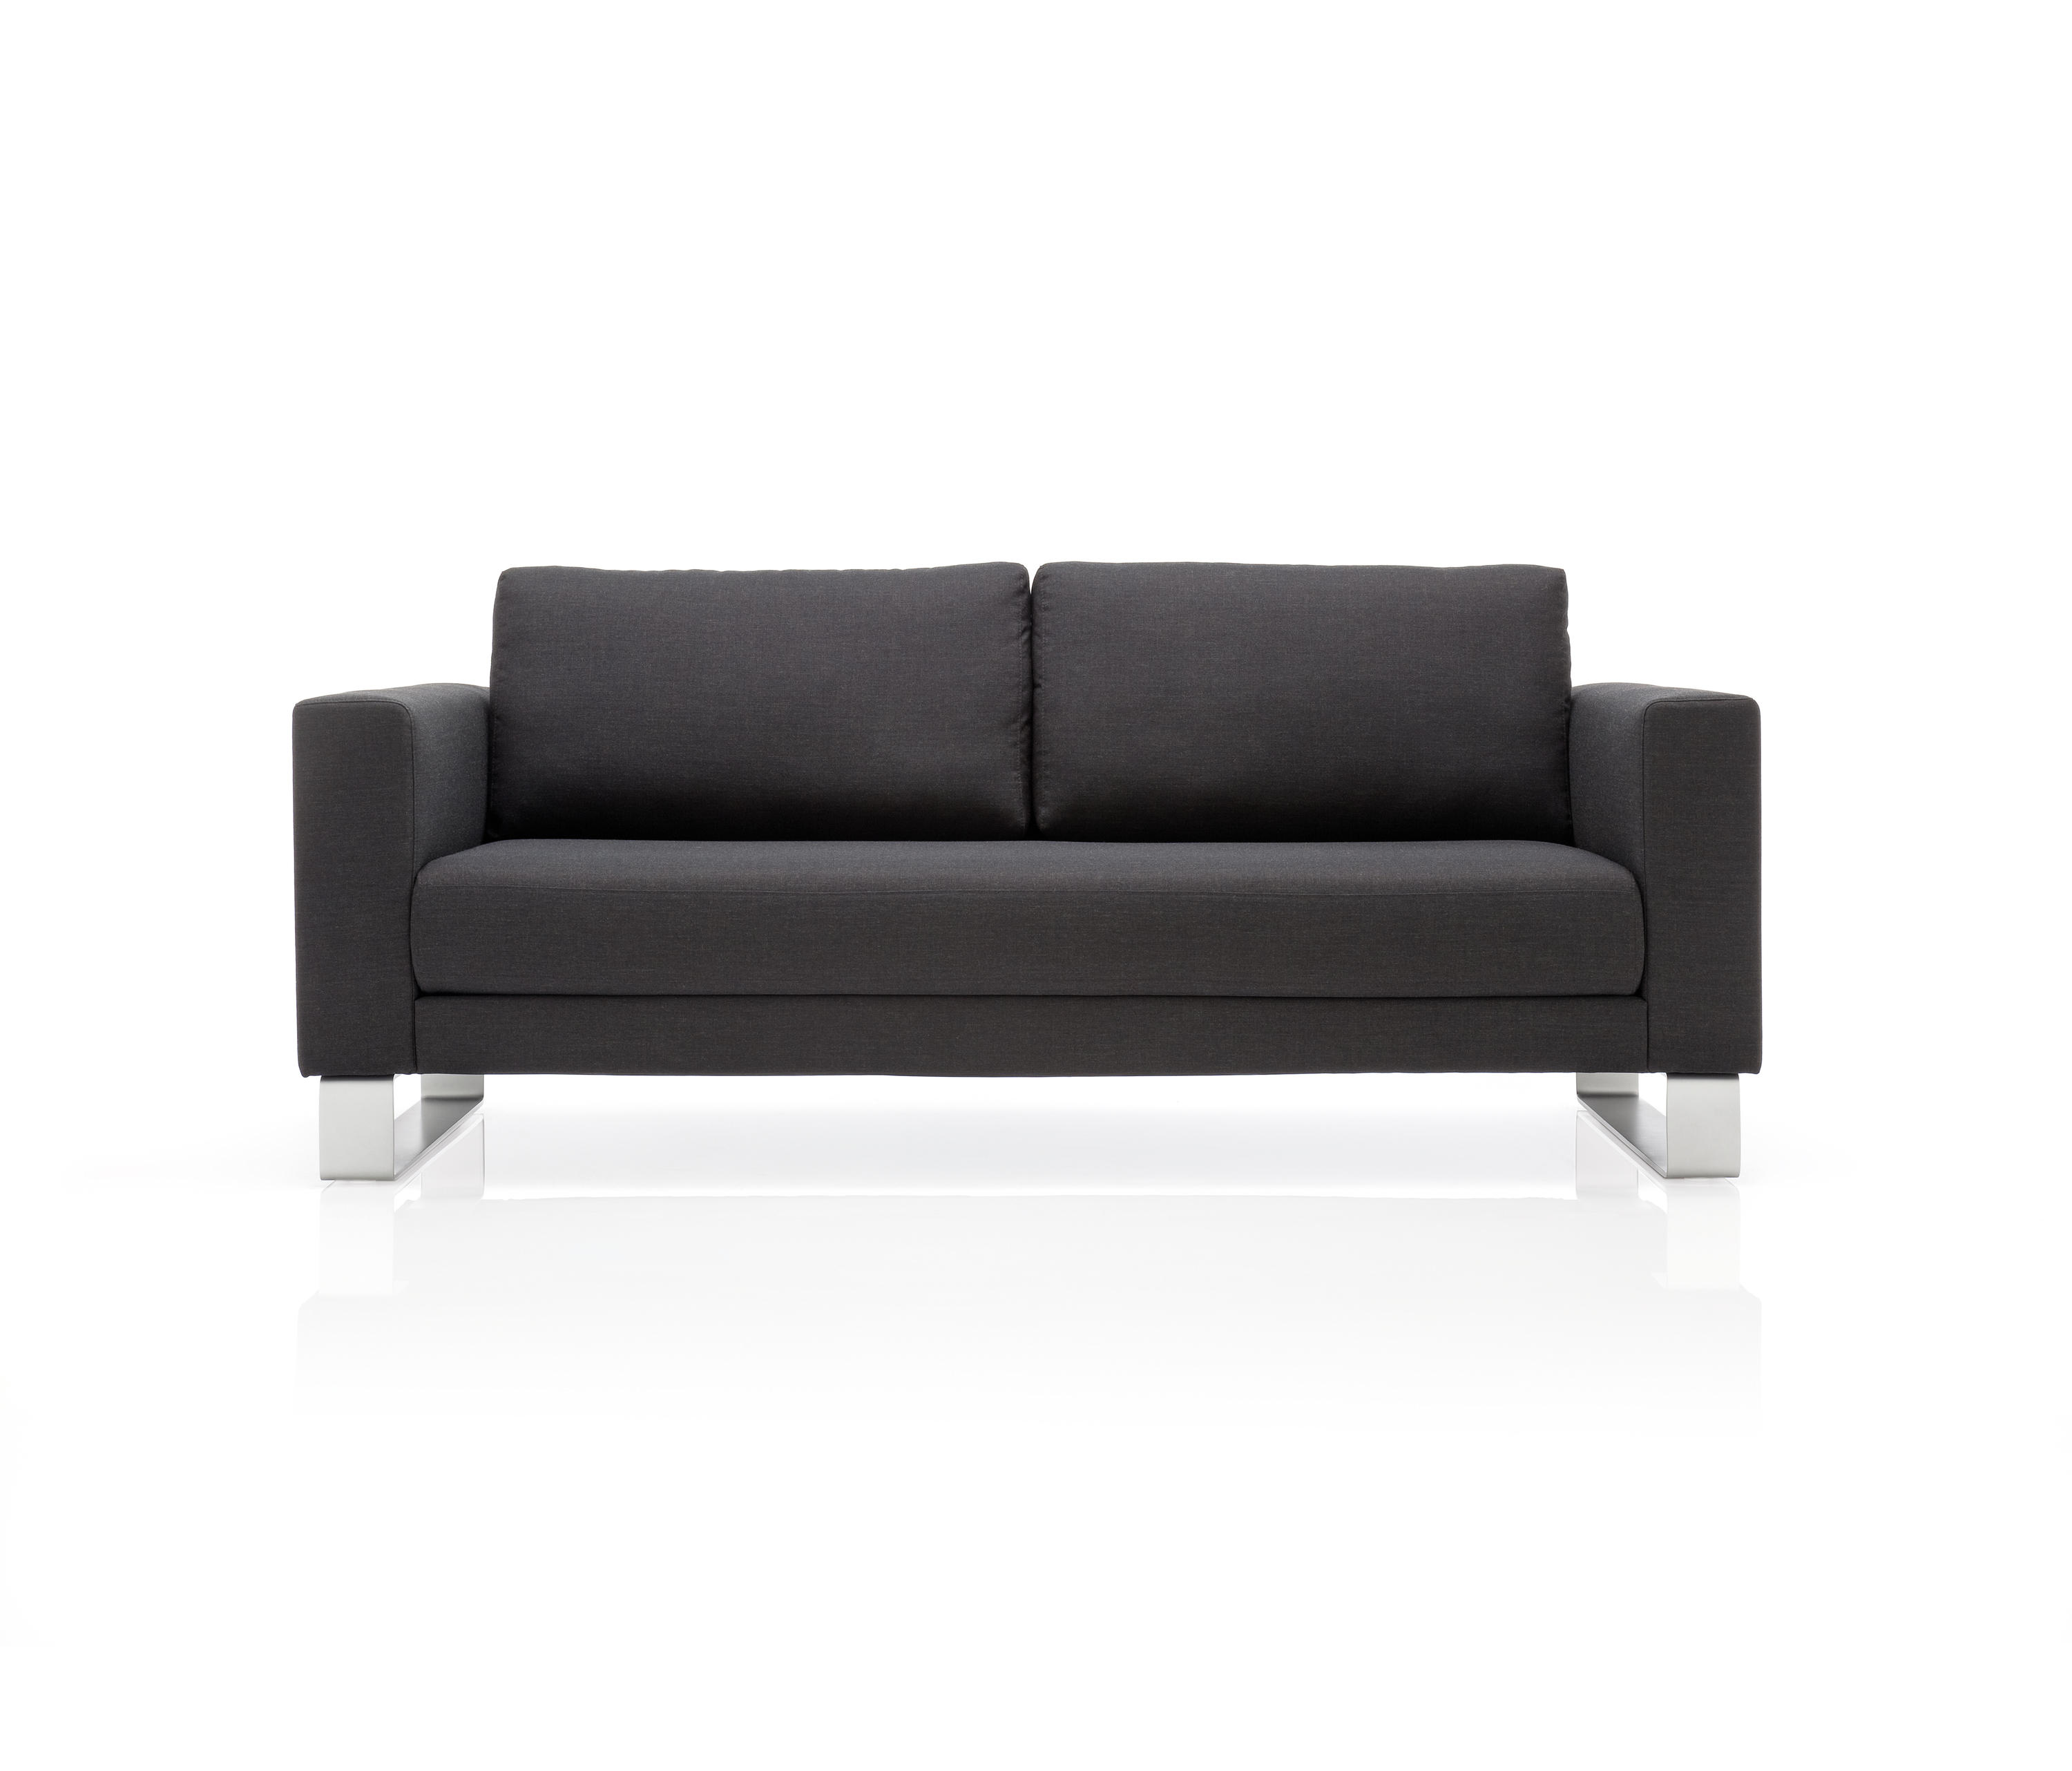 rolf benz vida lounge sofas from rolf benz architonic. Black Bedroom Furniture Sets. Home Design Ideas